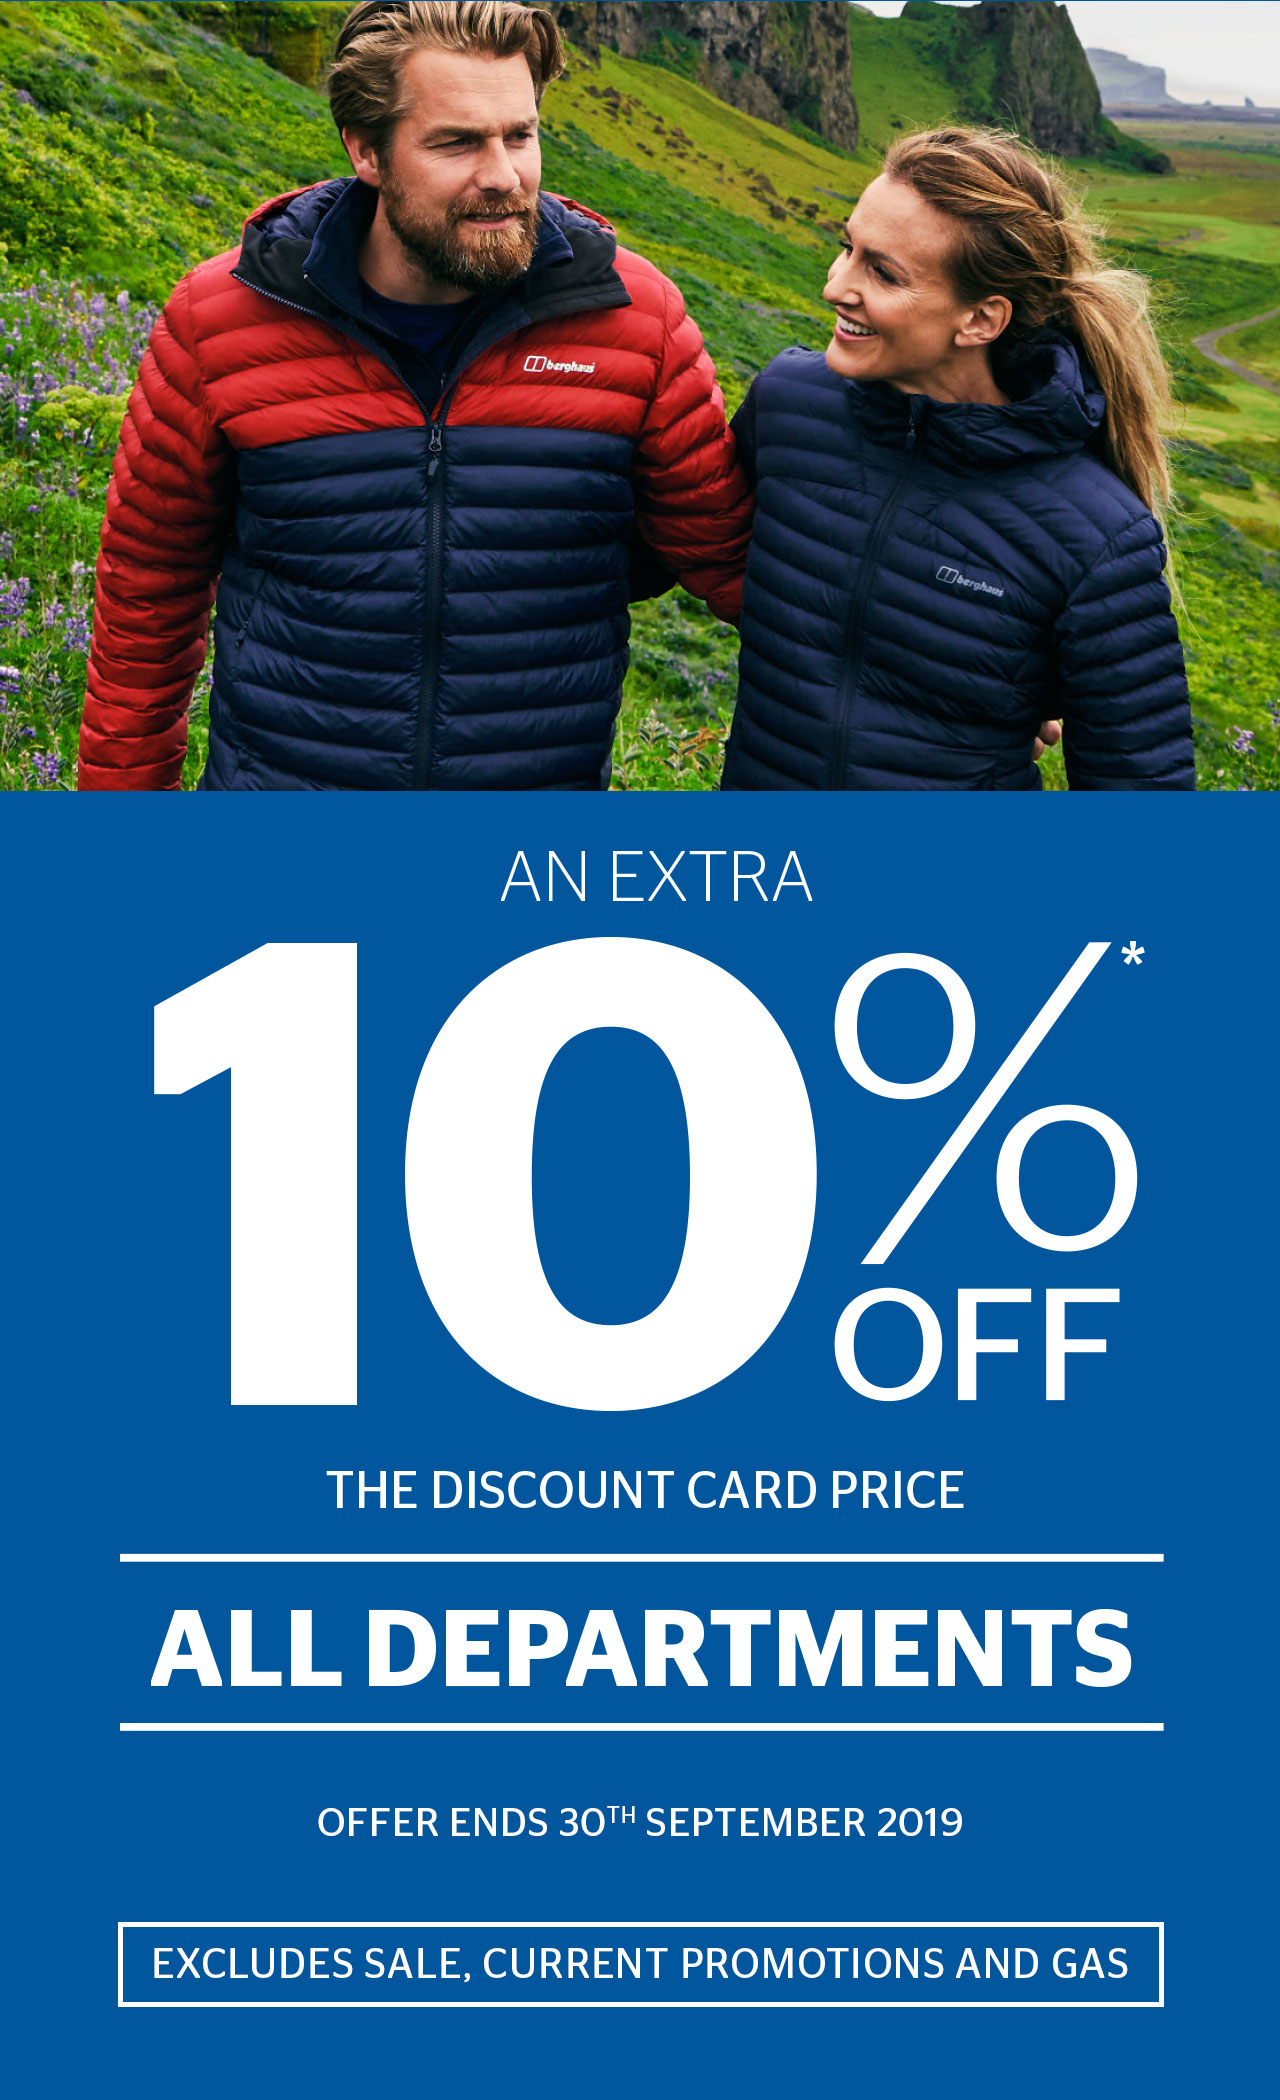 An extra 10% off the retail price